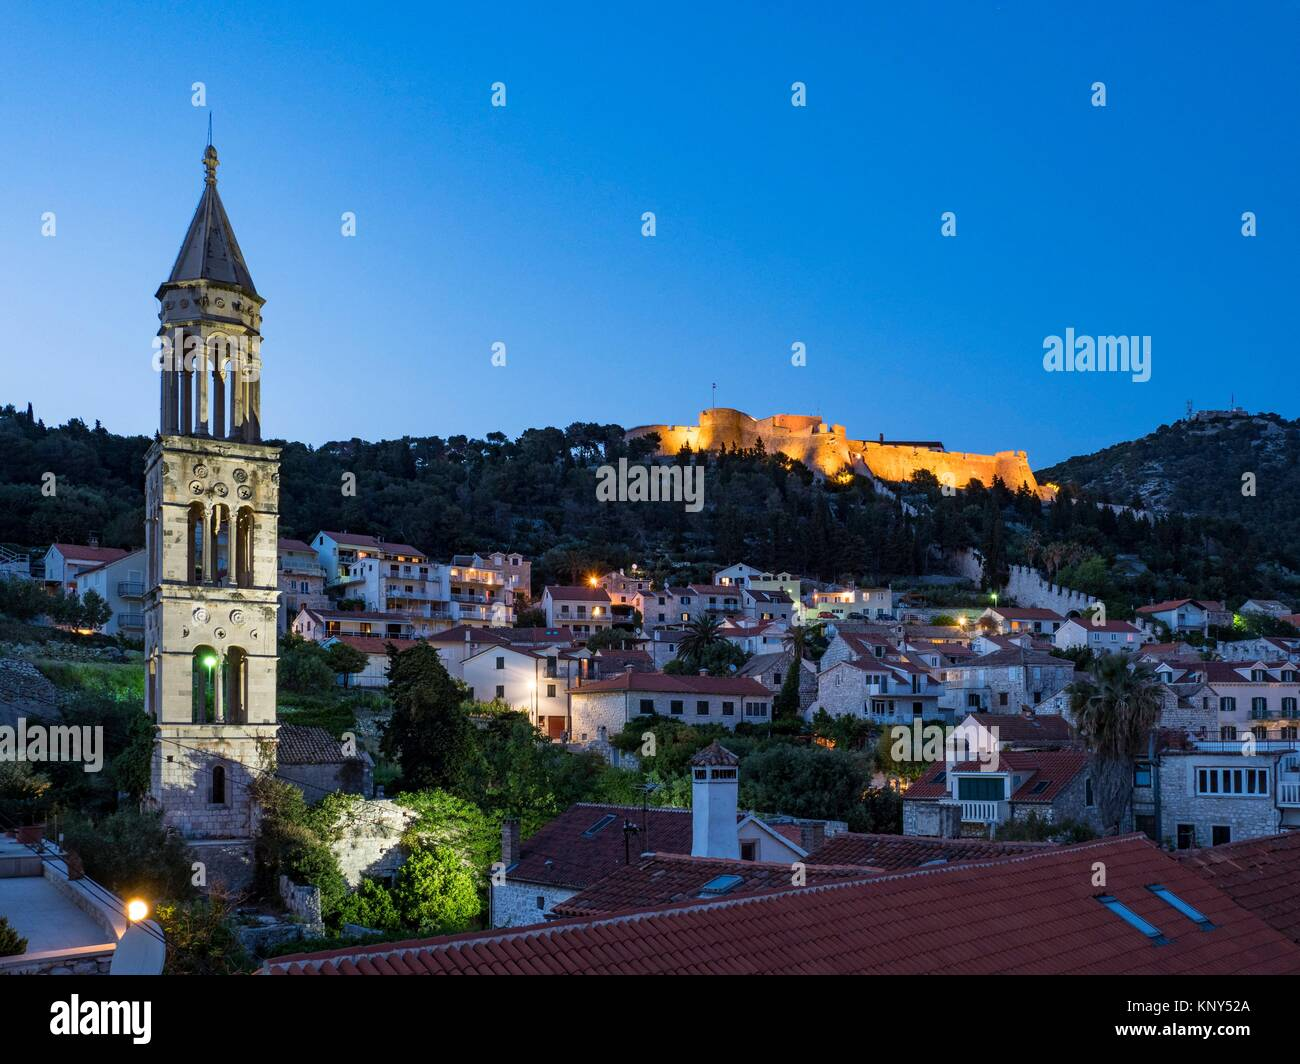 Hvar Village on Hvar Island Croatia. - Stock Image